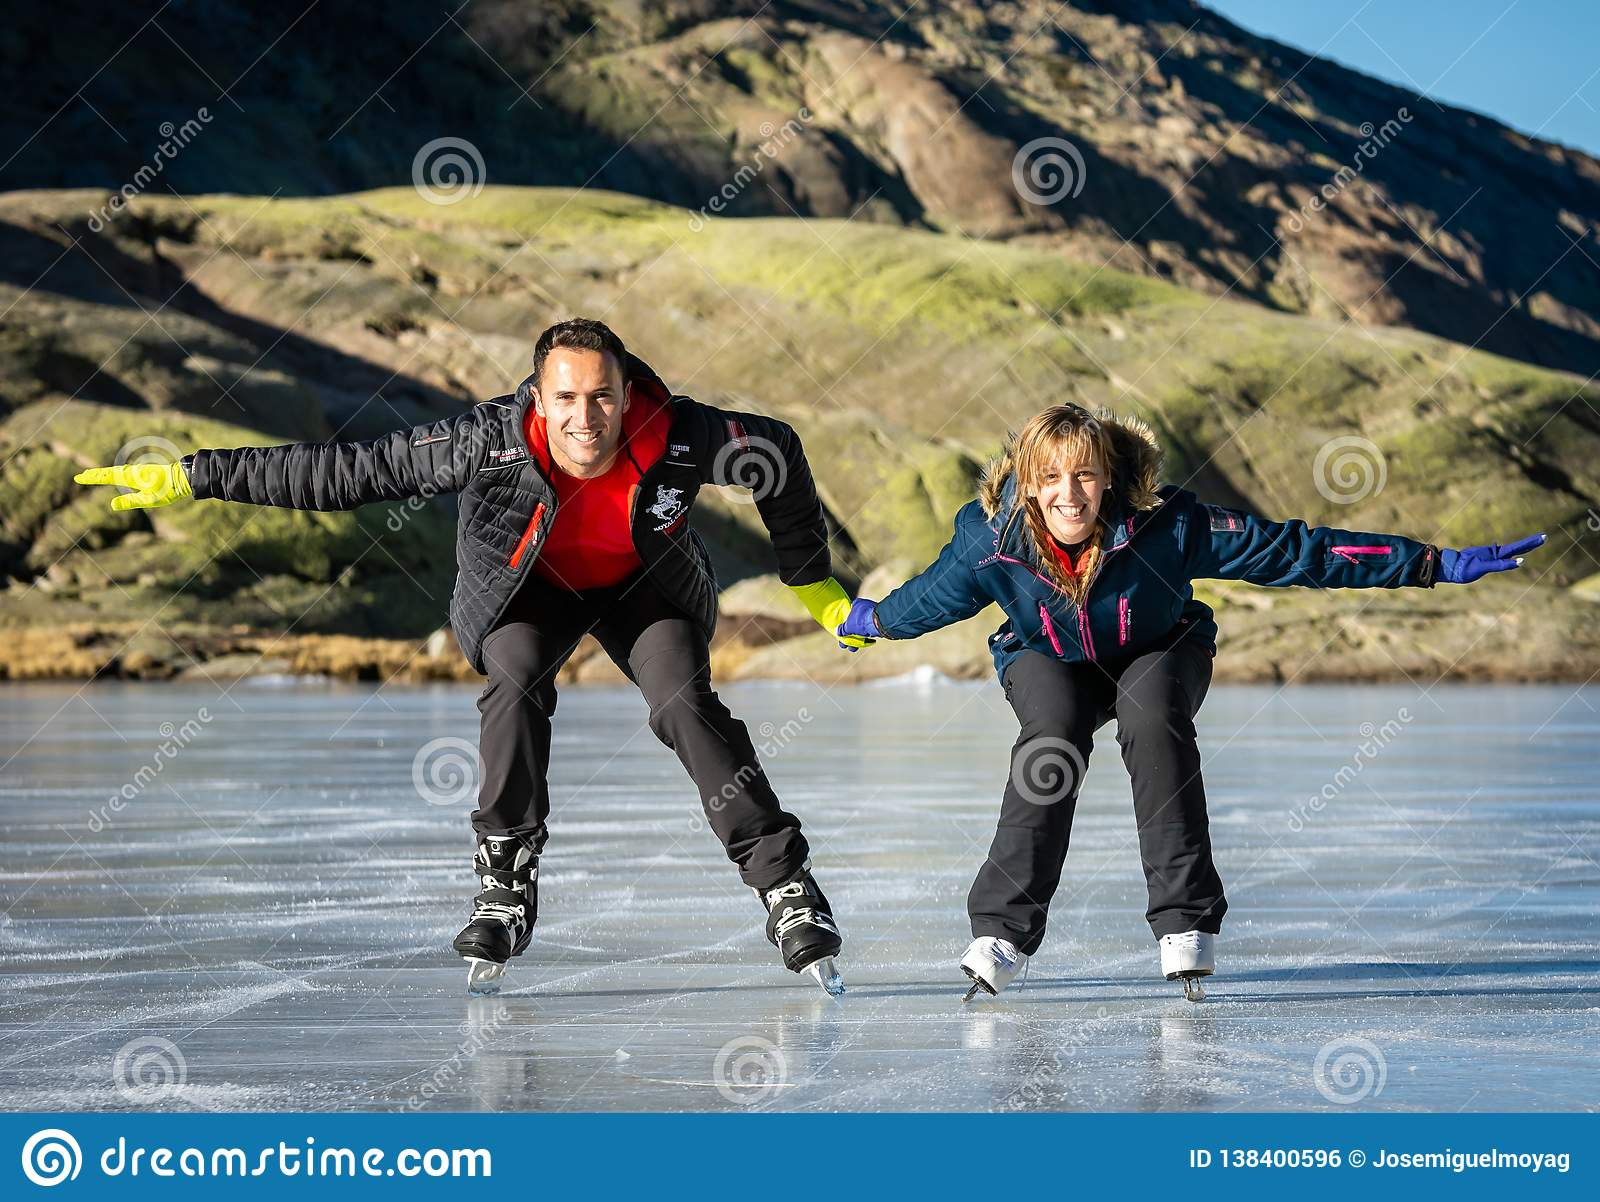 Gredos, Spain. 12-January-2019. Couple ice skating outdoors on a frozen lake during a lovely sunny winter day, Spain